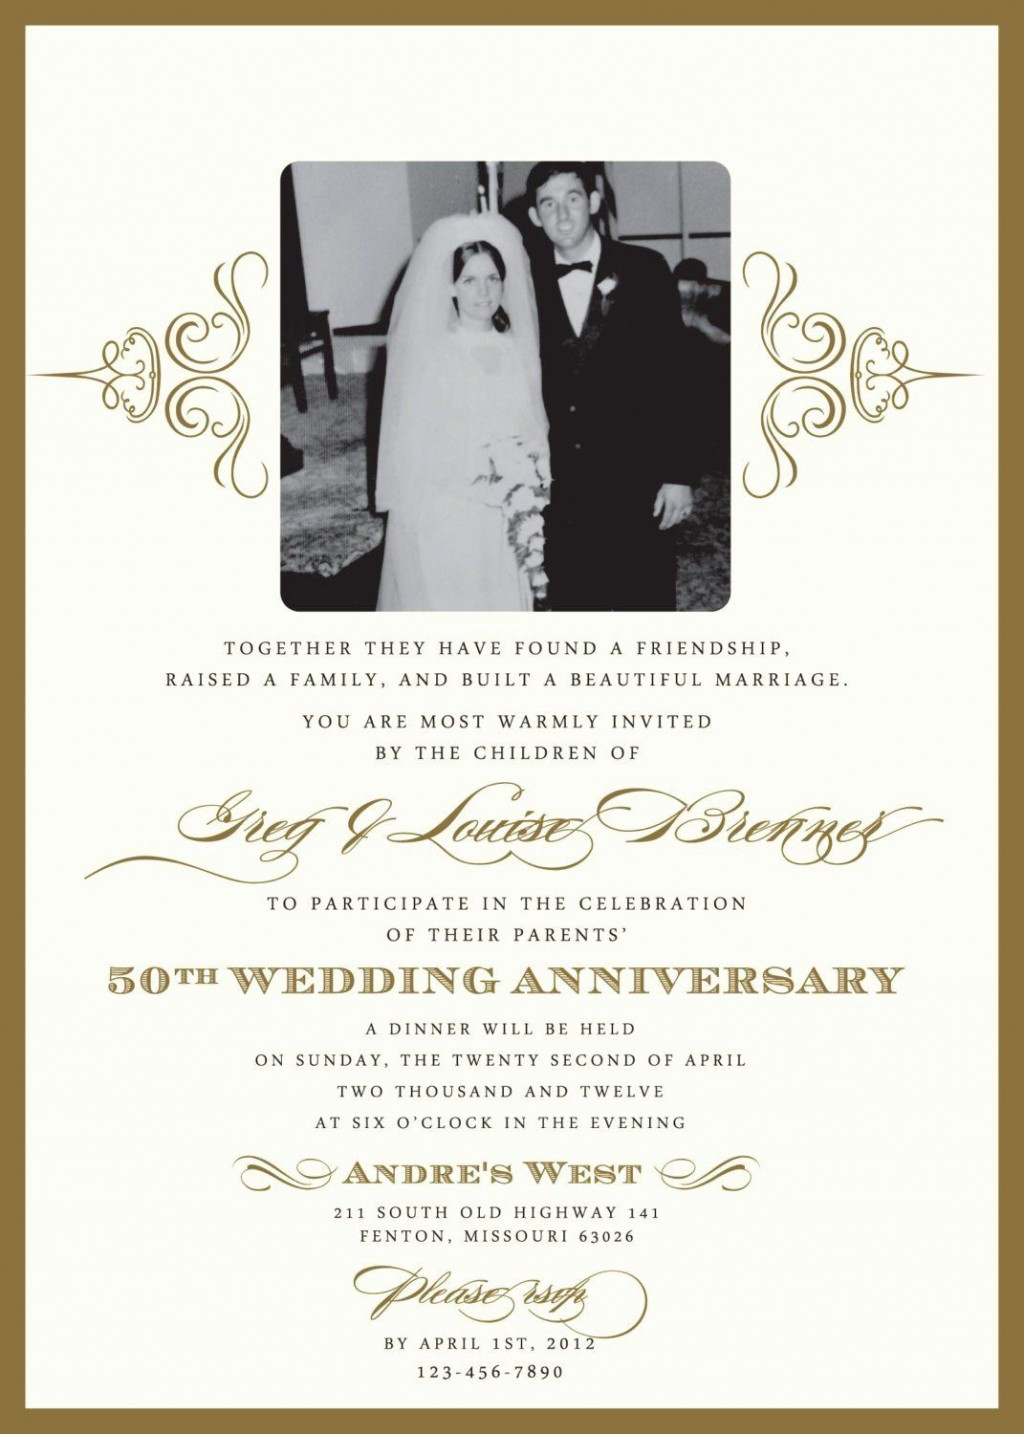 004 Remarkable 50th Anniversary Invitation Template Free Image  Download Golden WeddingLarge